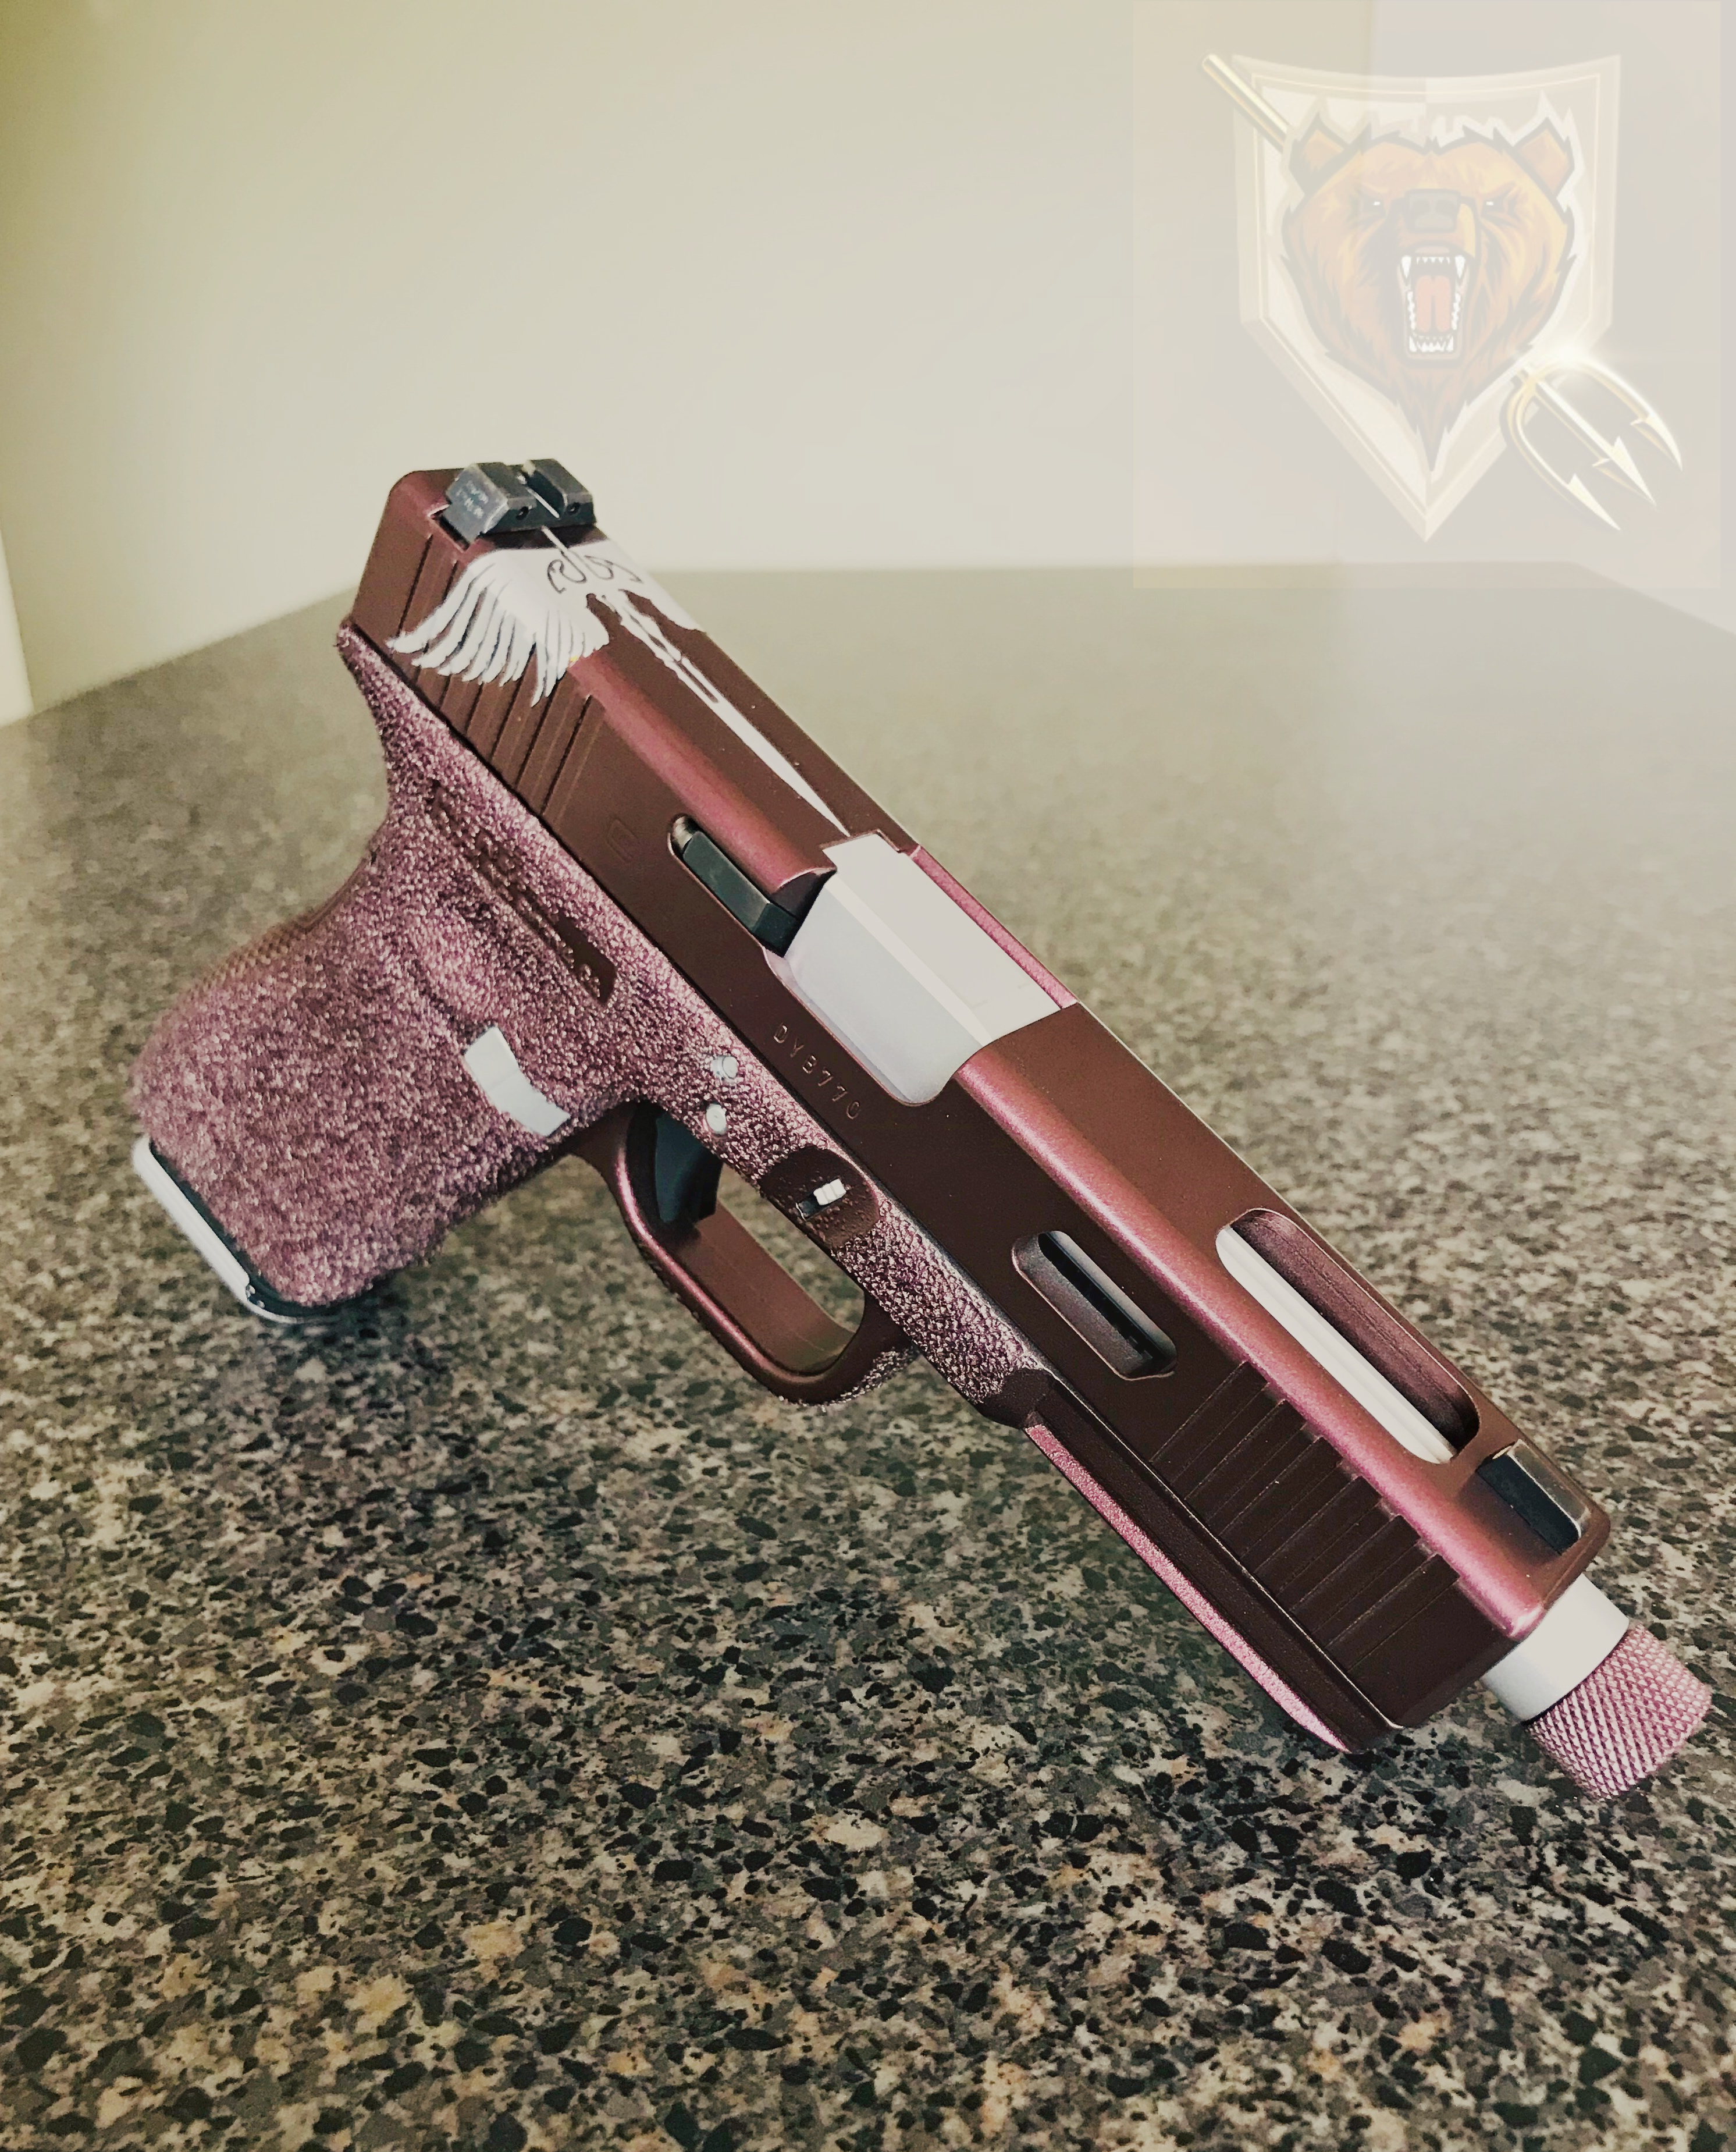 Gallery image titled VALKERIE GUN CANDY